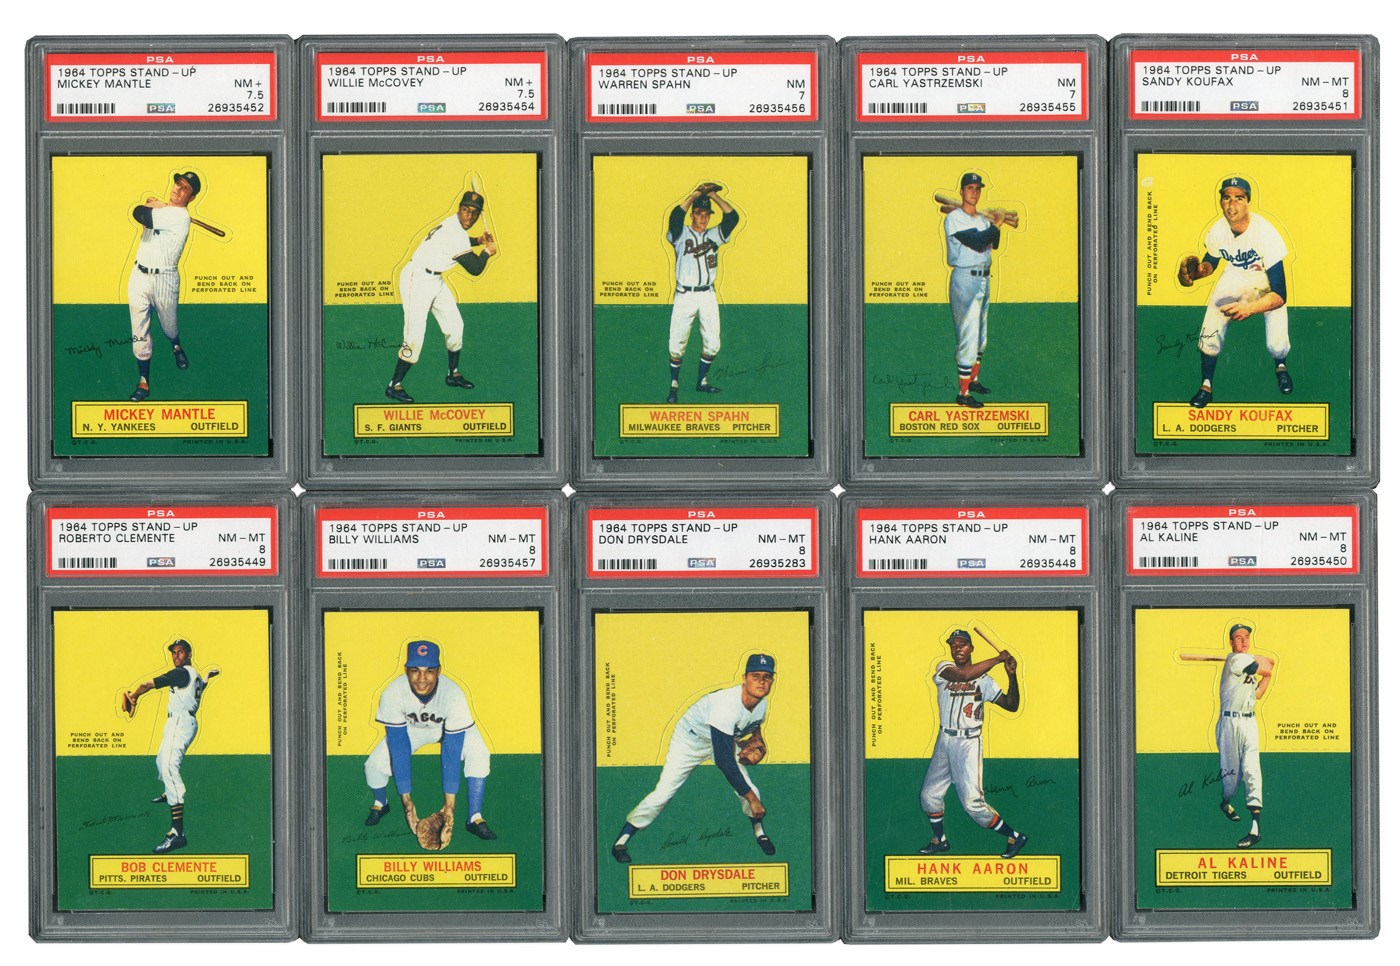 1964 Topps Stand-Up HIGH GRADE Complete Set with (18) PSA Graded!